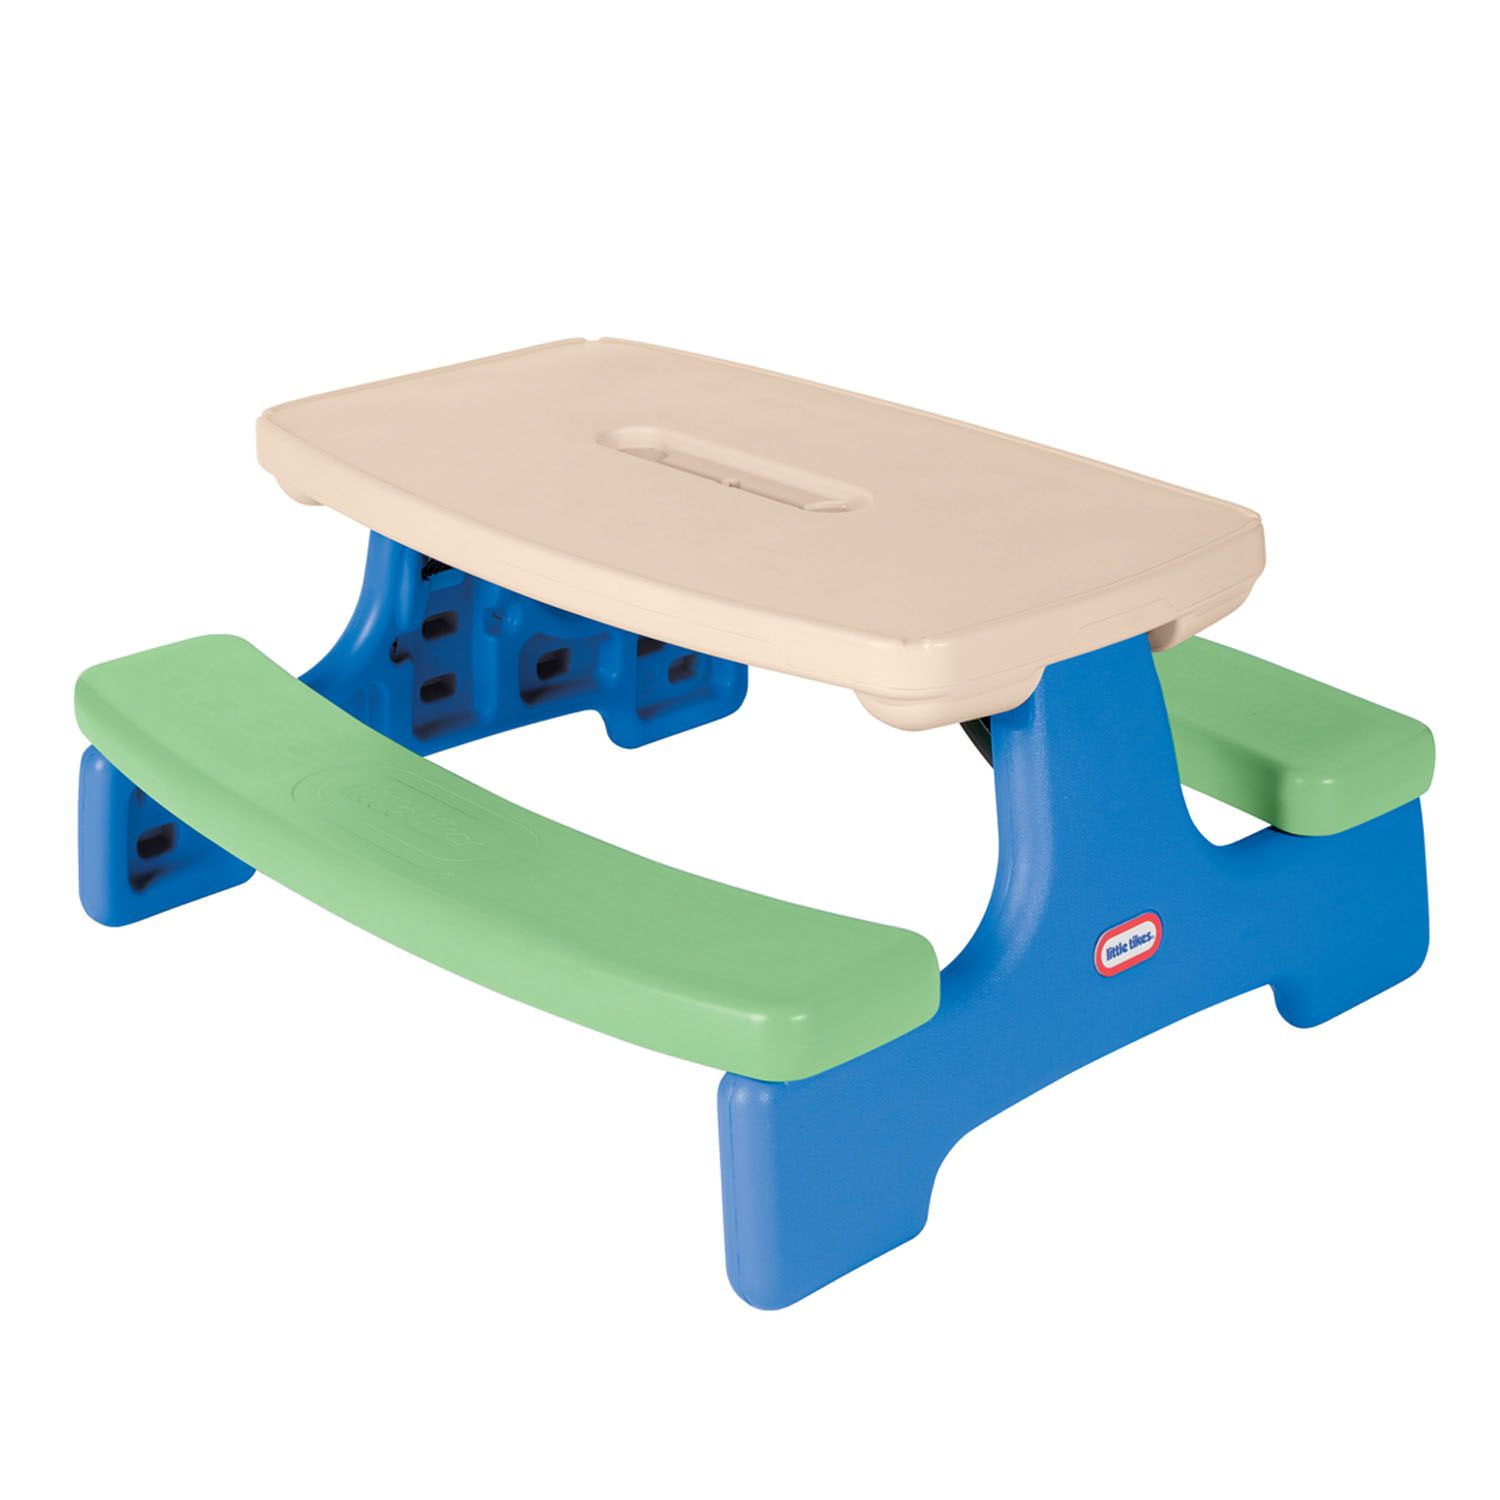 Little Tikes Children Kids Outdoor Easy Plastic Picnic Table Play Bench